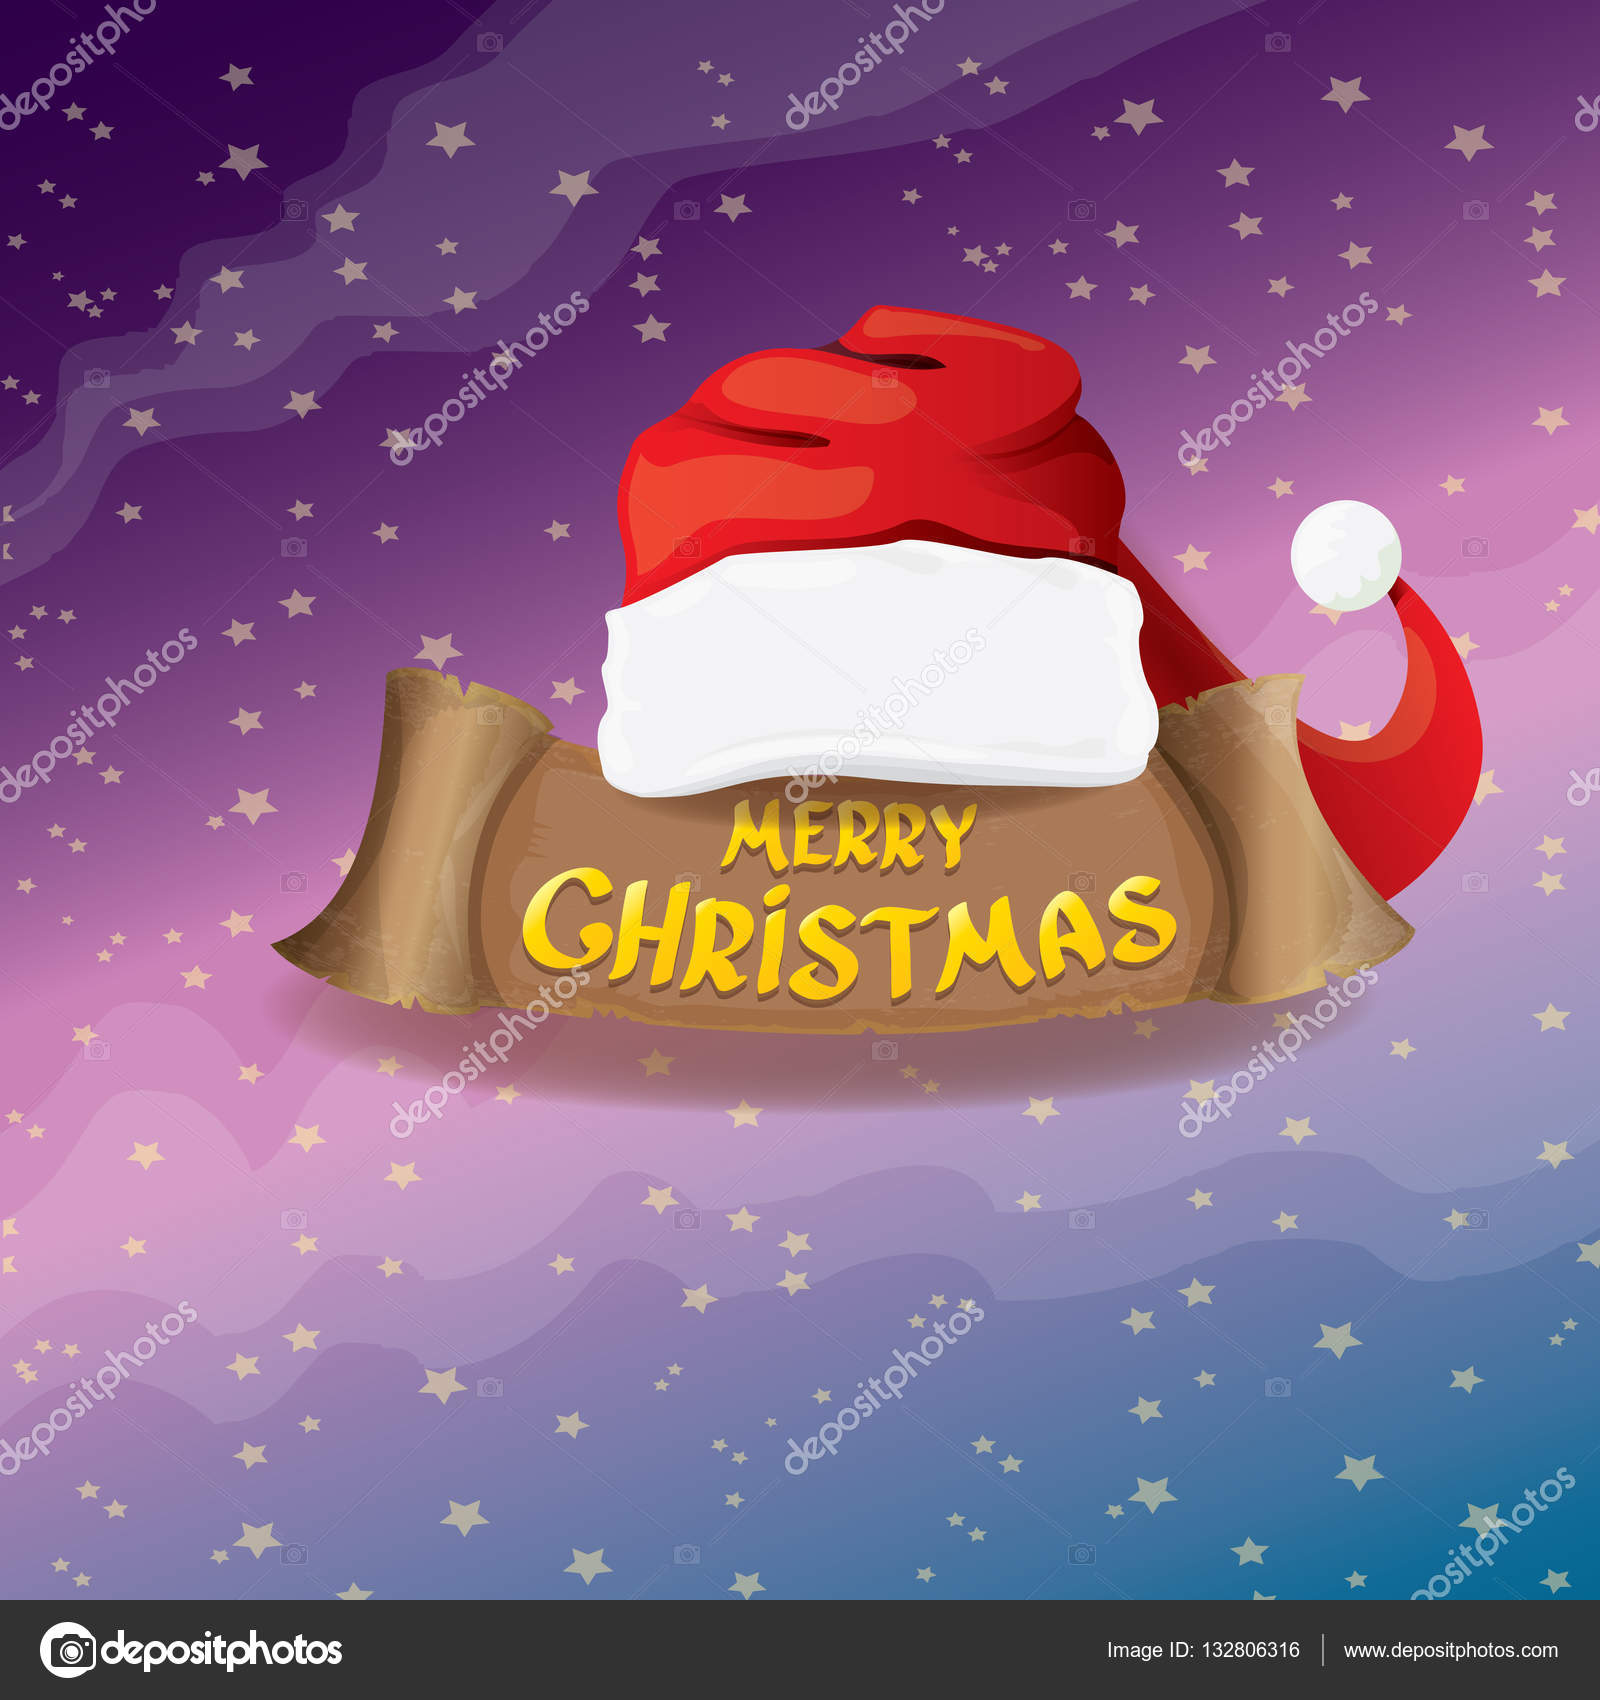 Vector Red Santa Hat Greeting Text Merry Christmas Stock Vector